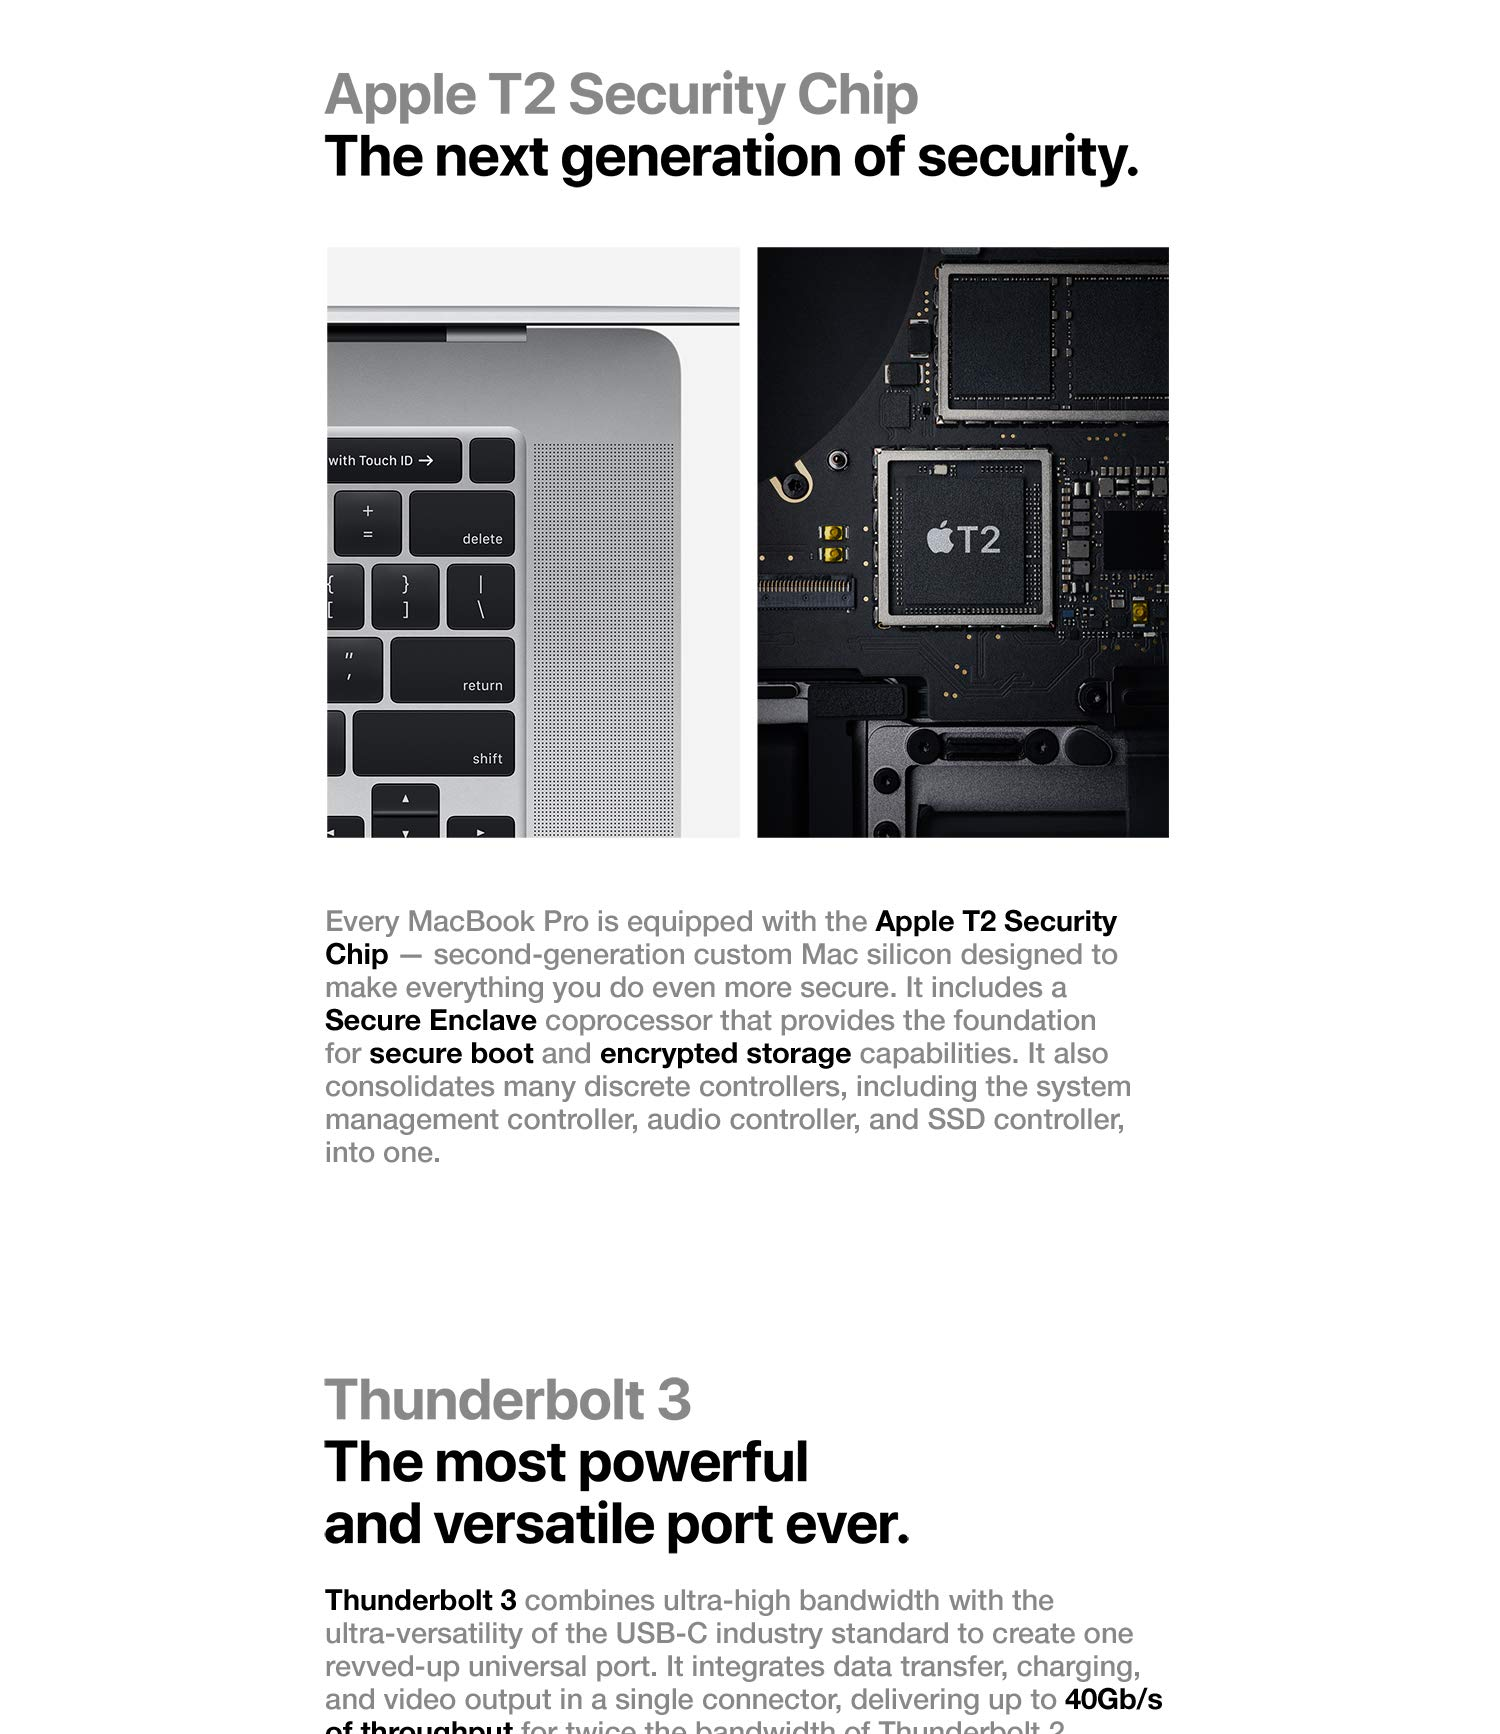 Apple T2 Security Chip. The next generation of security. Every MacBook Pro is equipped with the Apple T2 Security Chip - second-generation custom Mac silicon designed to make everything you do even more secure. It includes a Secure Enclave coprocessor that provides the foundation for secure boot and encrypted storage capabilities. It also consolidates many discrete controllers, including the system management, audio controller, and SSD controller, into one.